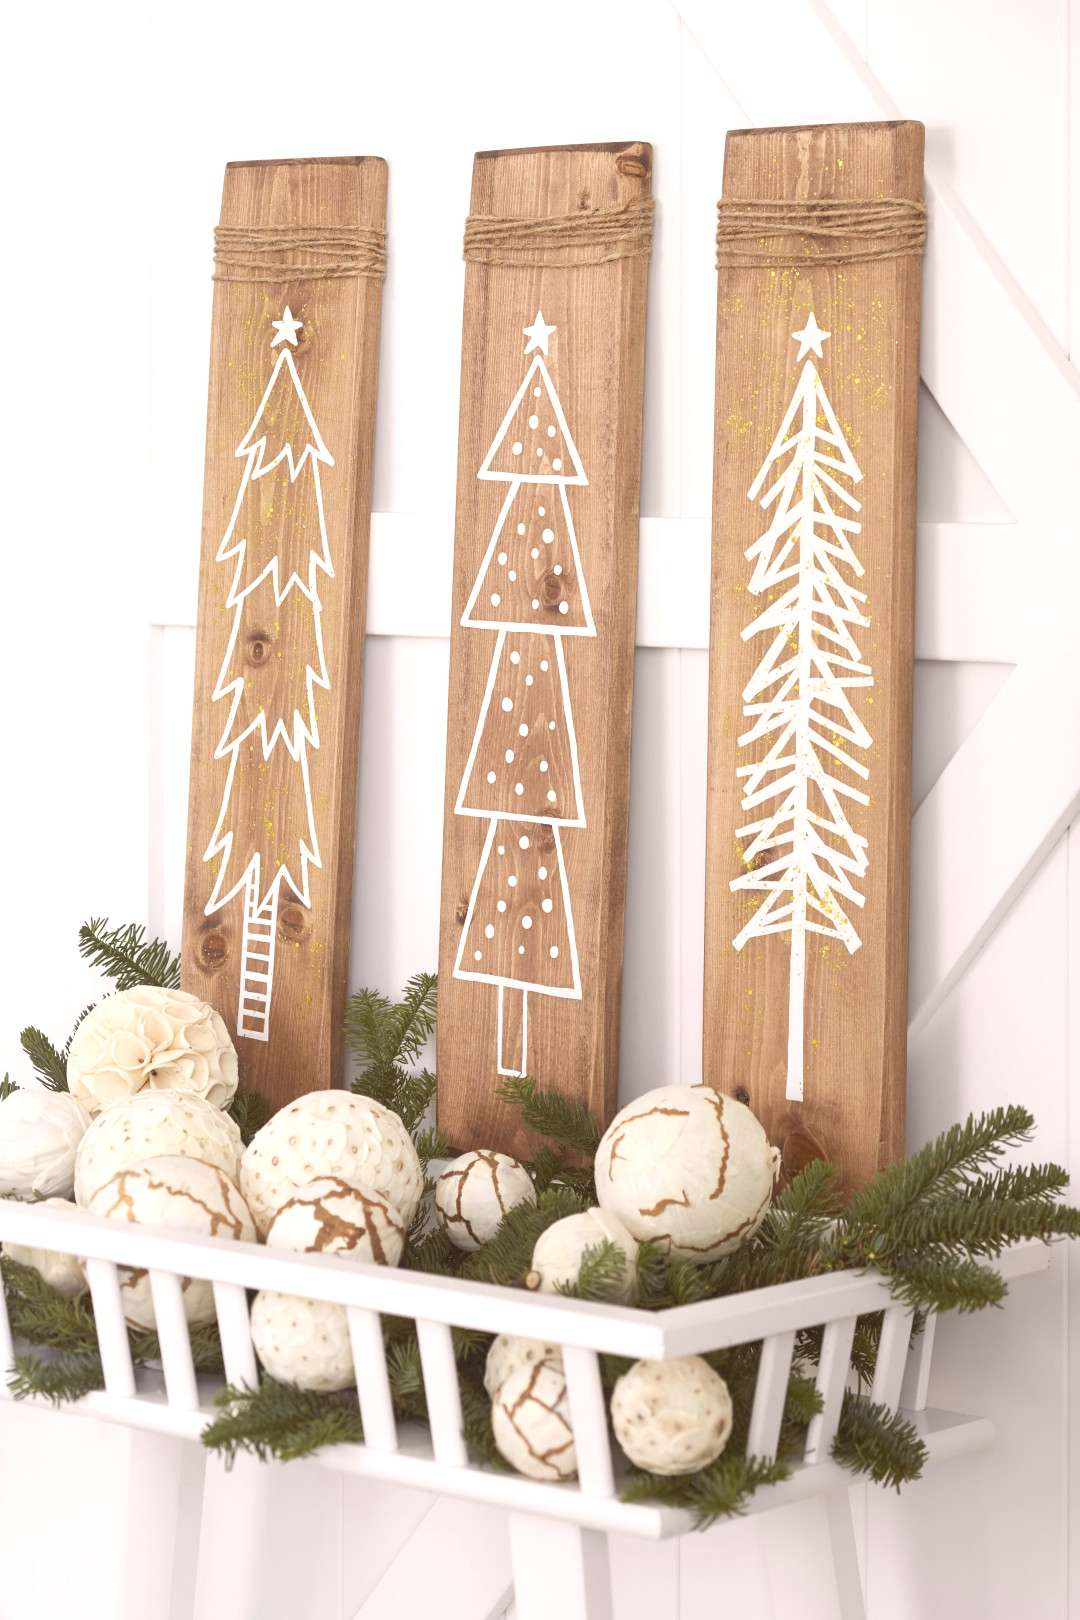 Use pine boards to add a touch of farmhouse charm to your Christmas decorations with these easy DIY